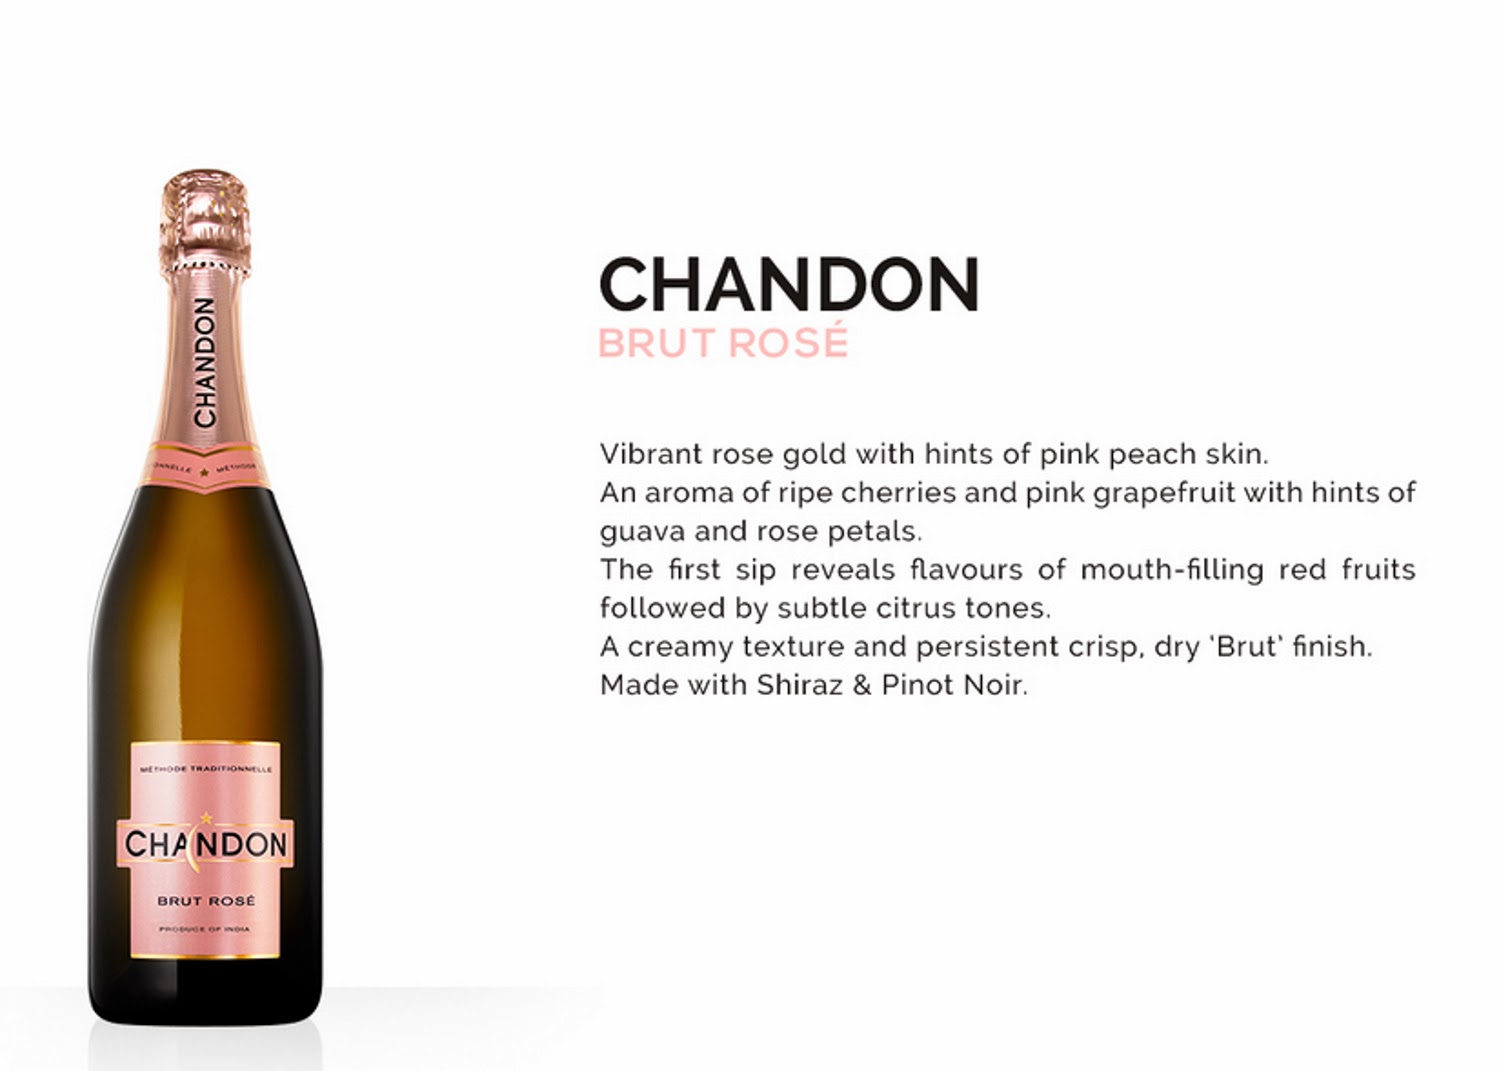 Chandon Brut Rose Produce of India